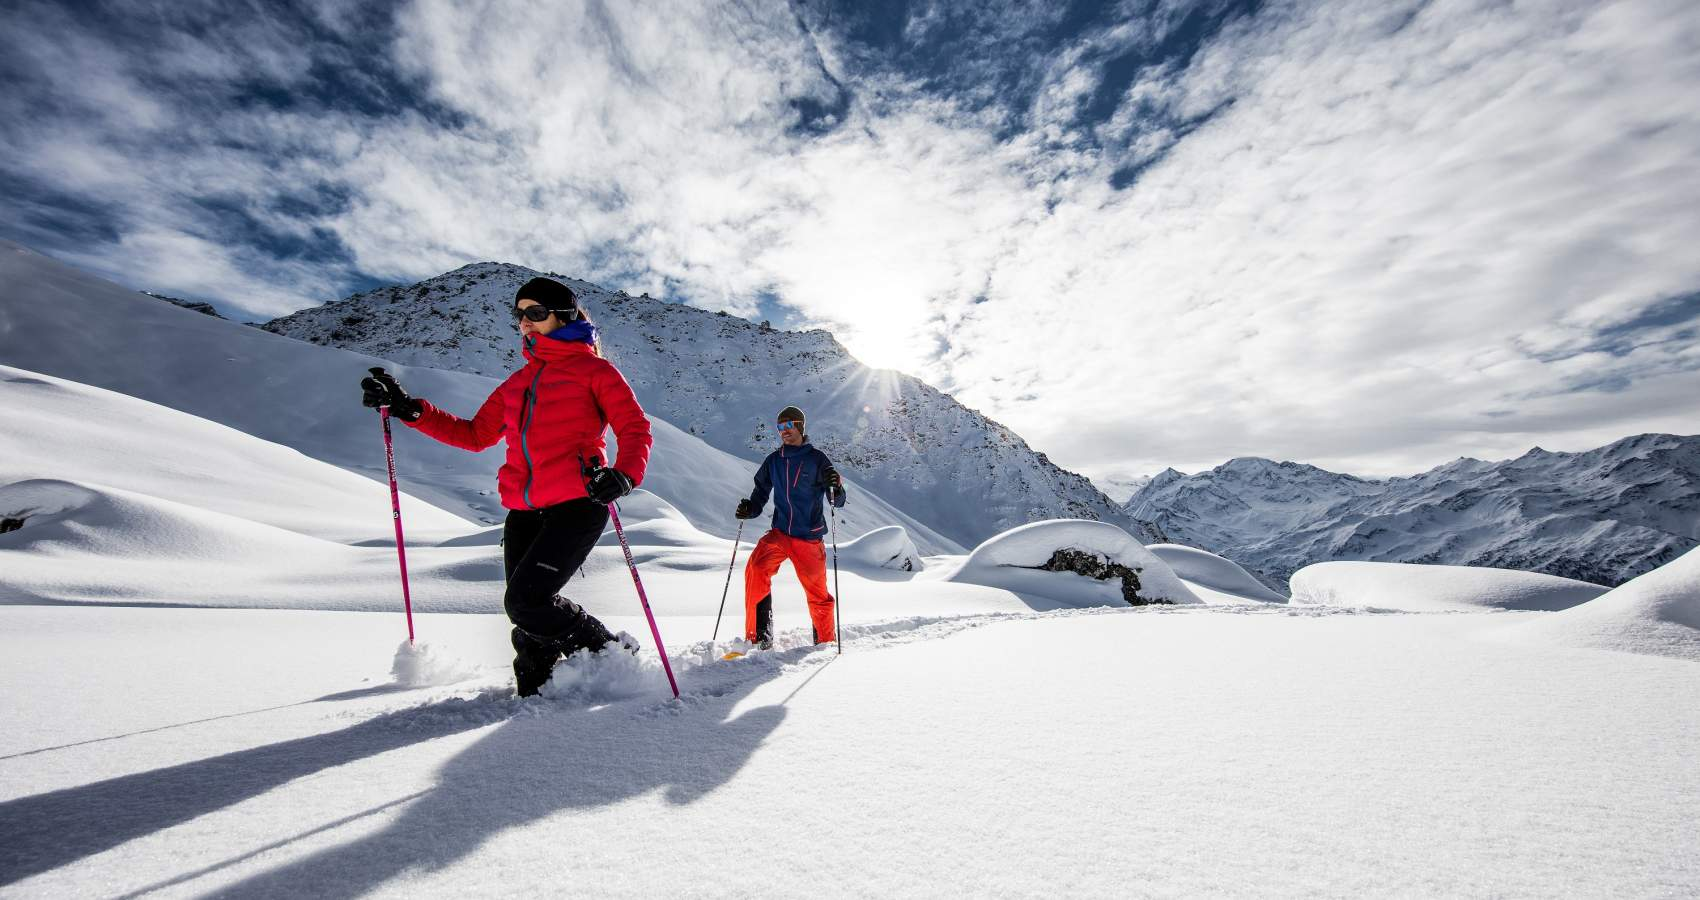 Snow-shoeing - a great way to see the stunning landscape.